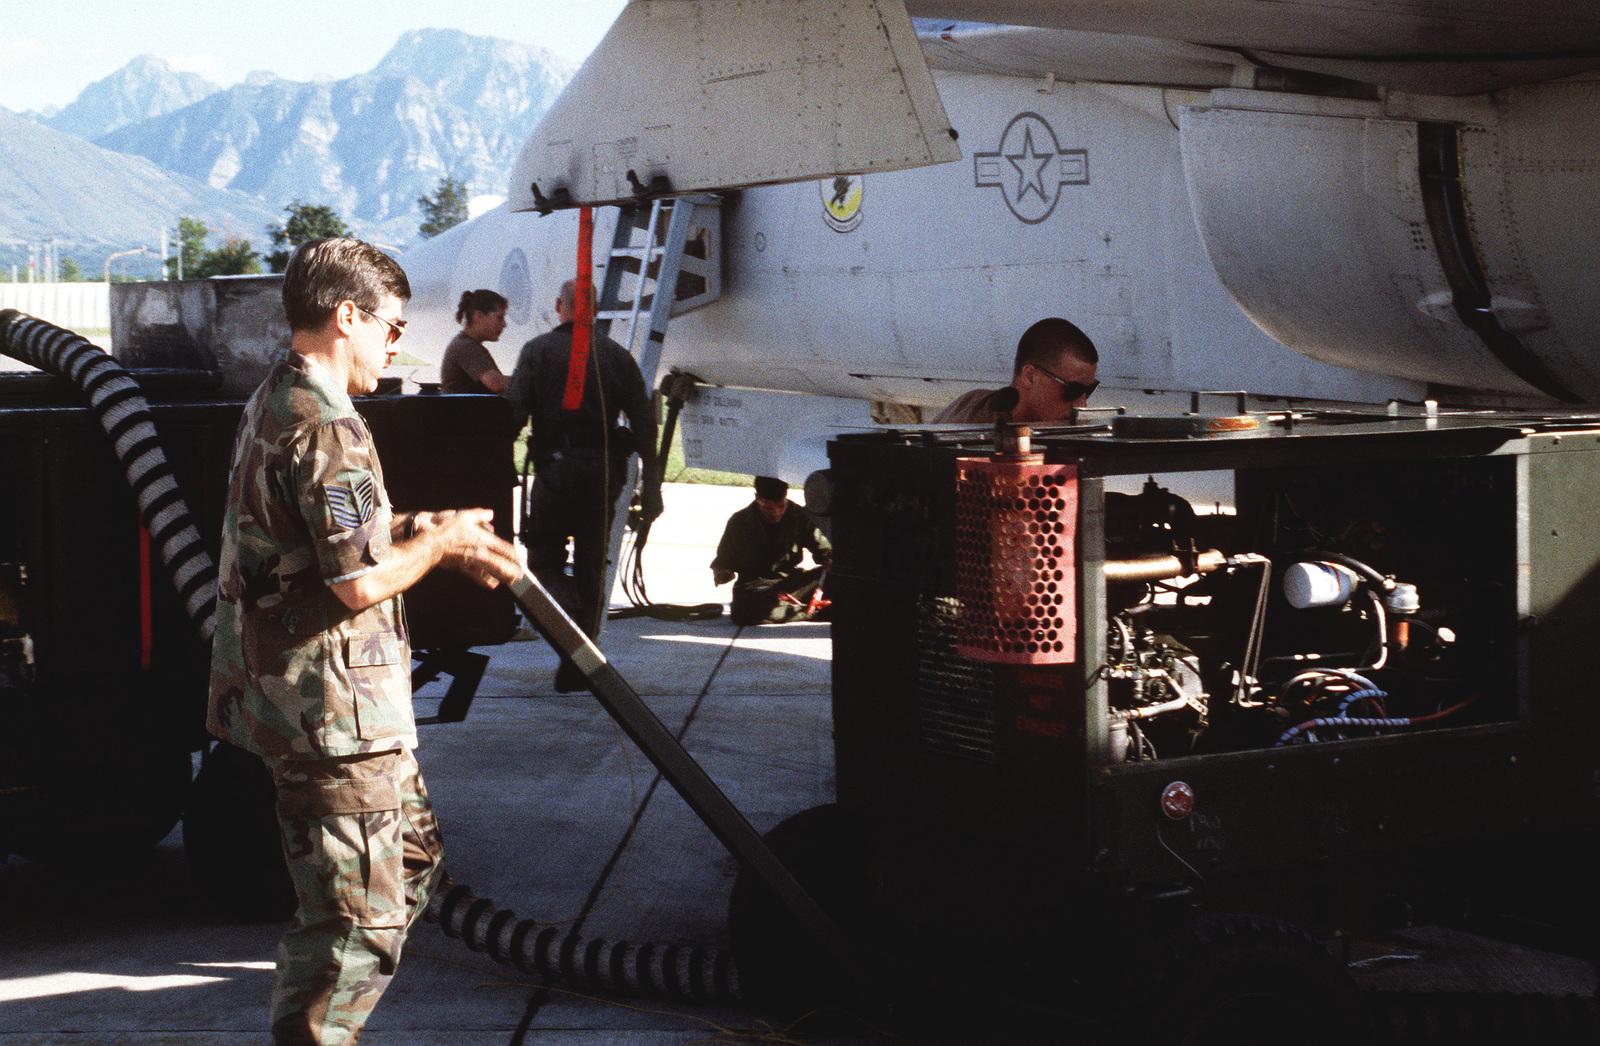 MASTER SGT. Reeves (left), the production supervisor for the 429th Electronic Combat Squadron, 27th Fighter Wing, Cannon Air Force Base, NM, helps position support equipment near an EF-111A Raven aircraft on the flightline. The ground crew is preparing the aircraft for a NATO airstrike against the Bosnian Serbs